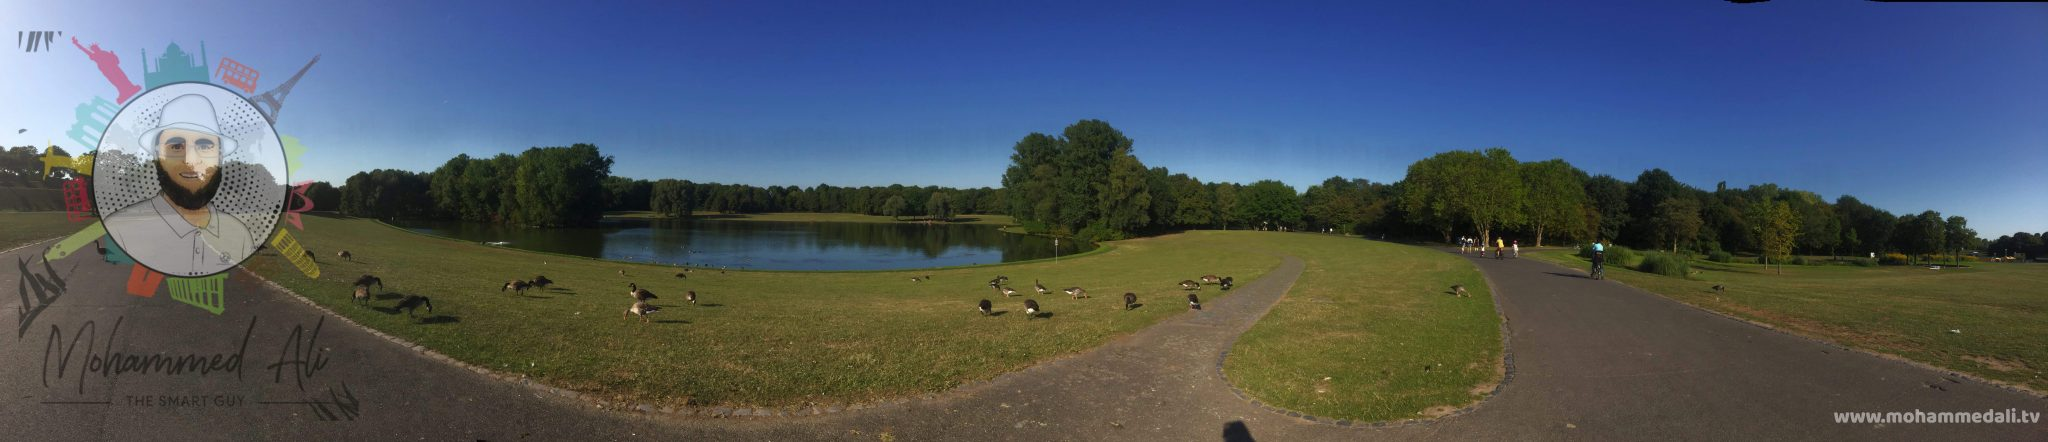 Awesome Boat lake with ducks in the Bonner Rheinaue in Germany